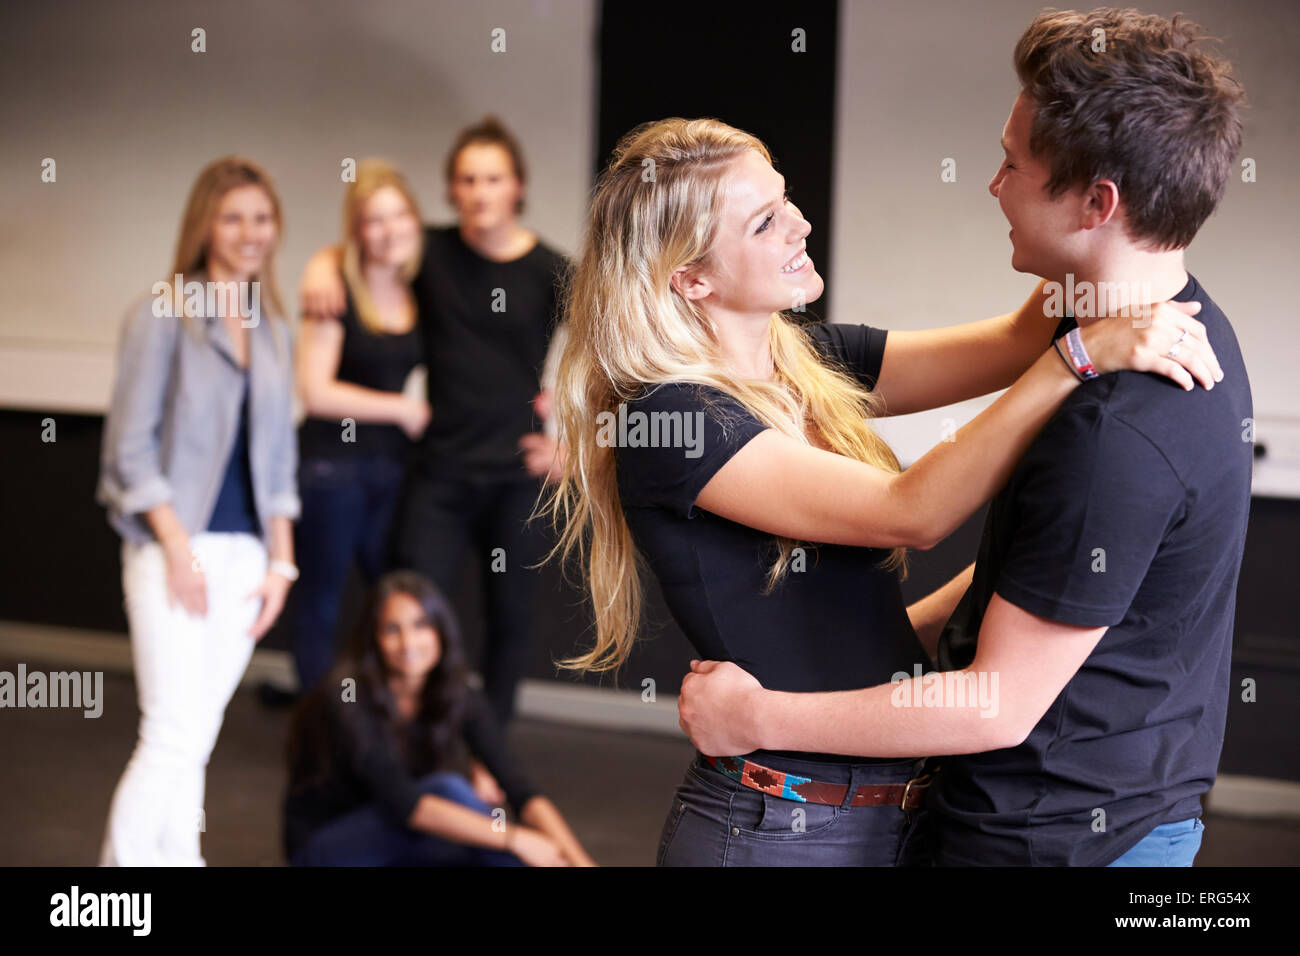 Students Taking Acting Class At Drama College - Stock Image